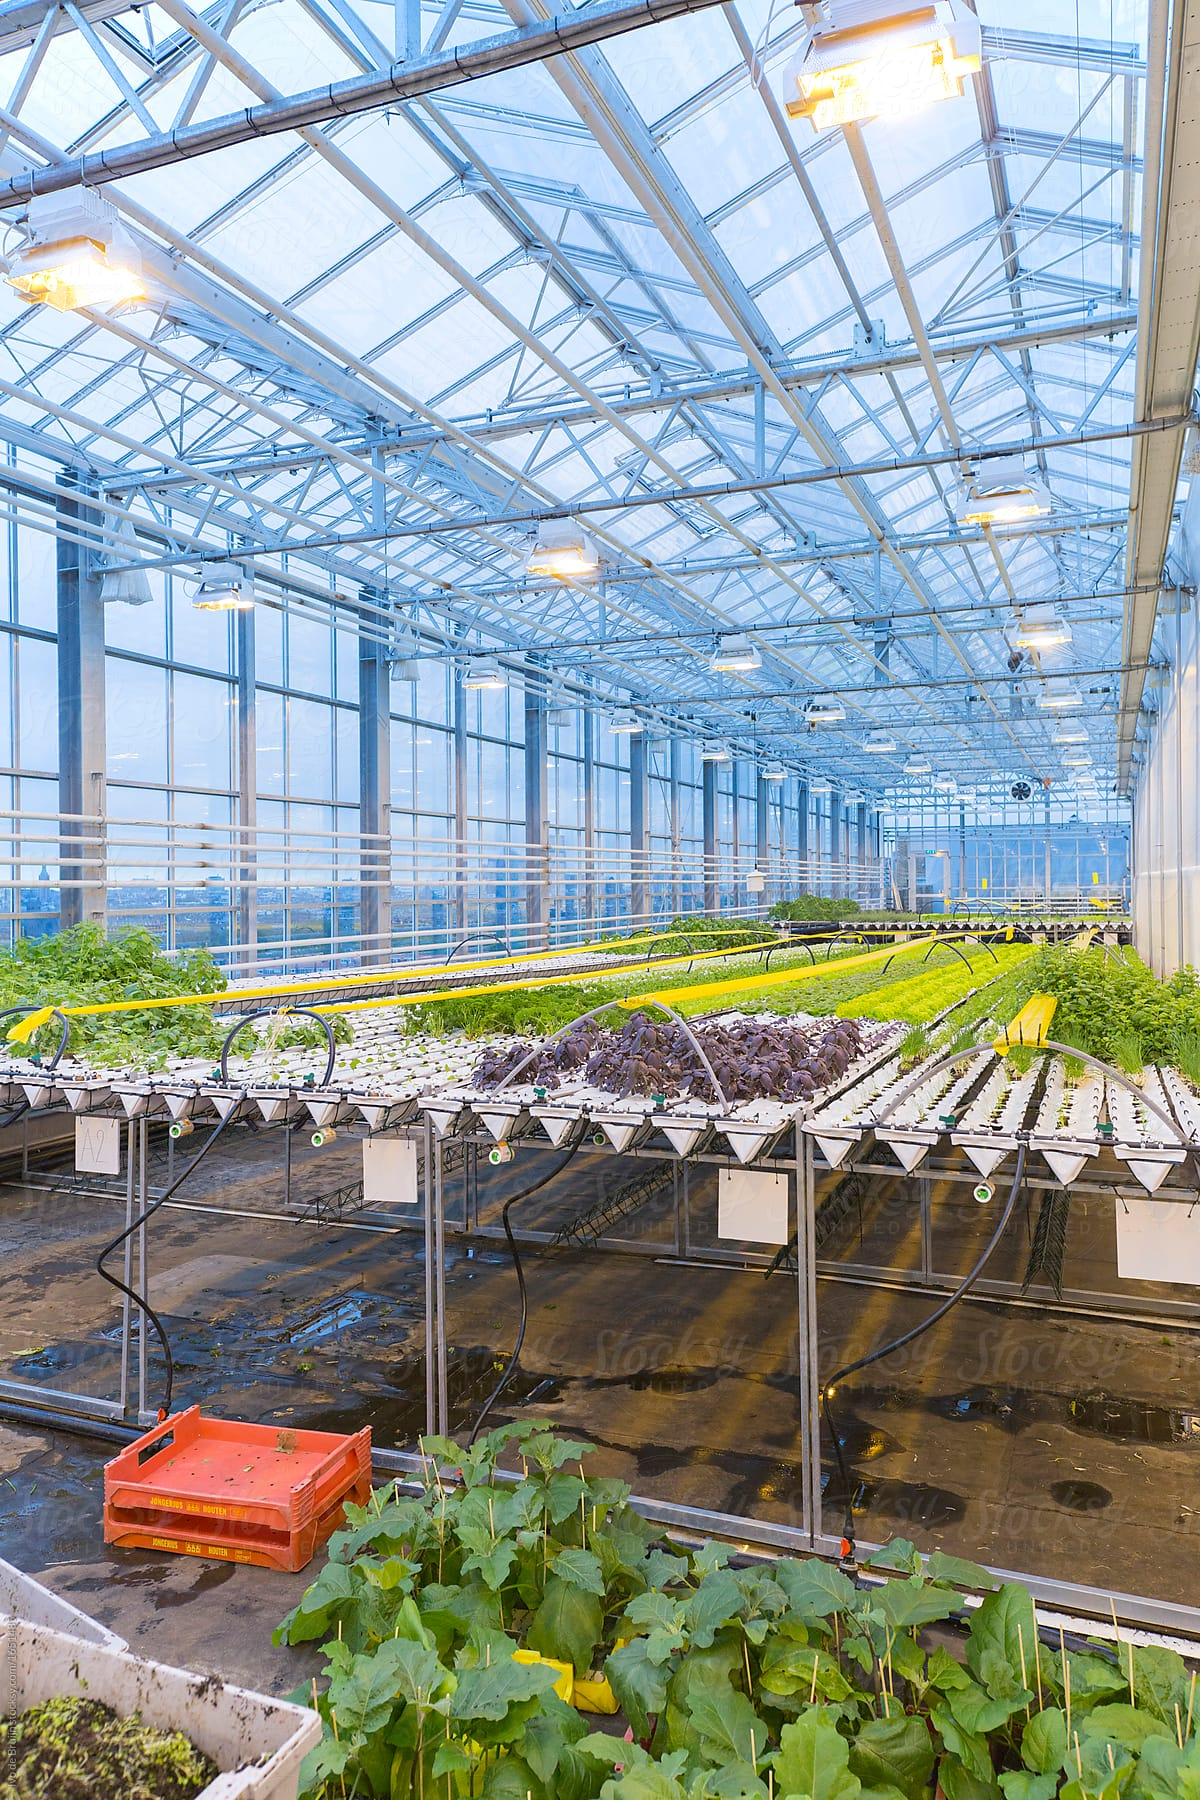 Superieur Photo Of A Modern Greenhouse In Which Vegetable Plants Are Cultivated By  Ivo De Bruijn For